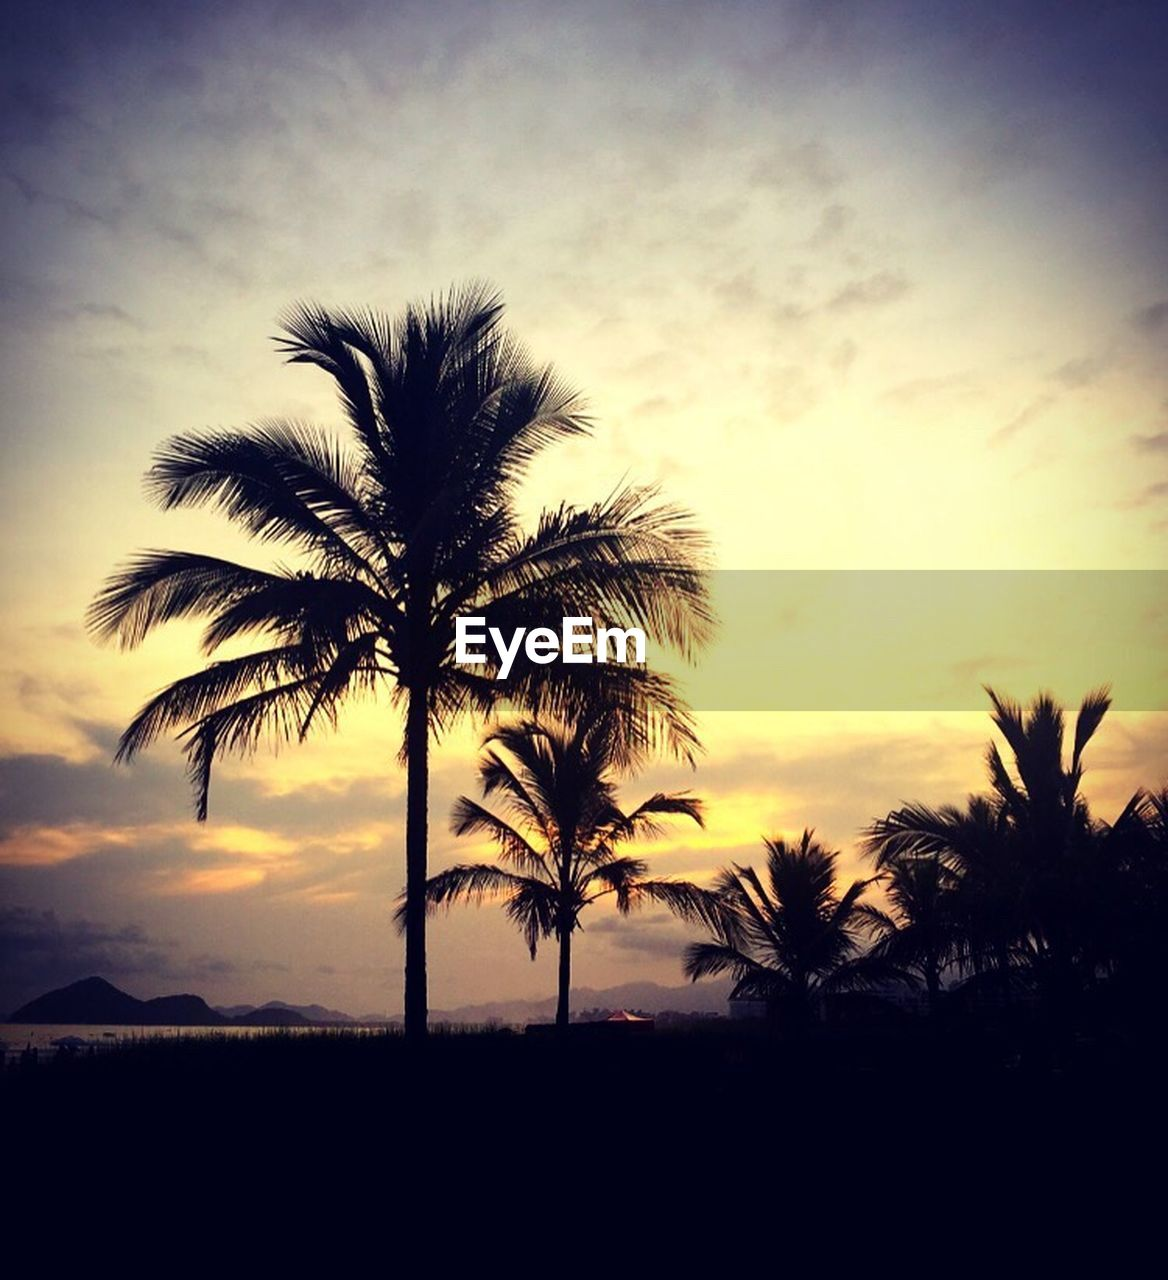 palm tree, tree, sunset, silhouette, beauty in nature, sky, tree trunk, scenics, tranquility, tranquil scene, nature, growth, palm frond, no people, outdoors, cloud - sky, day